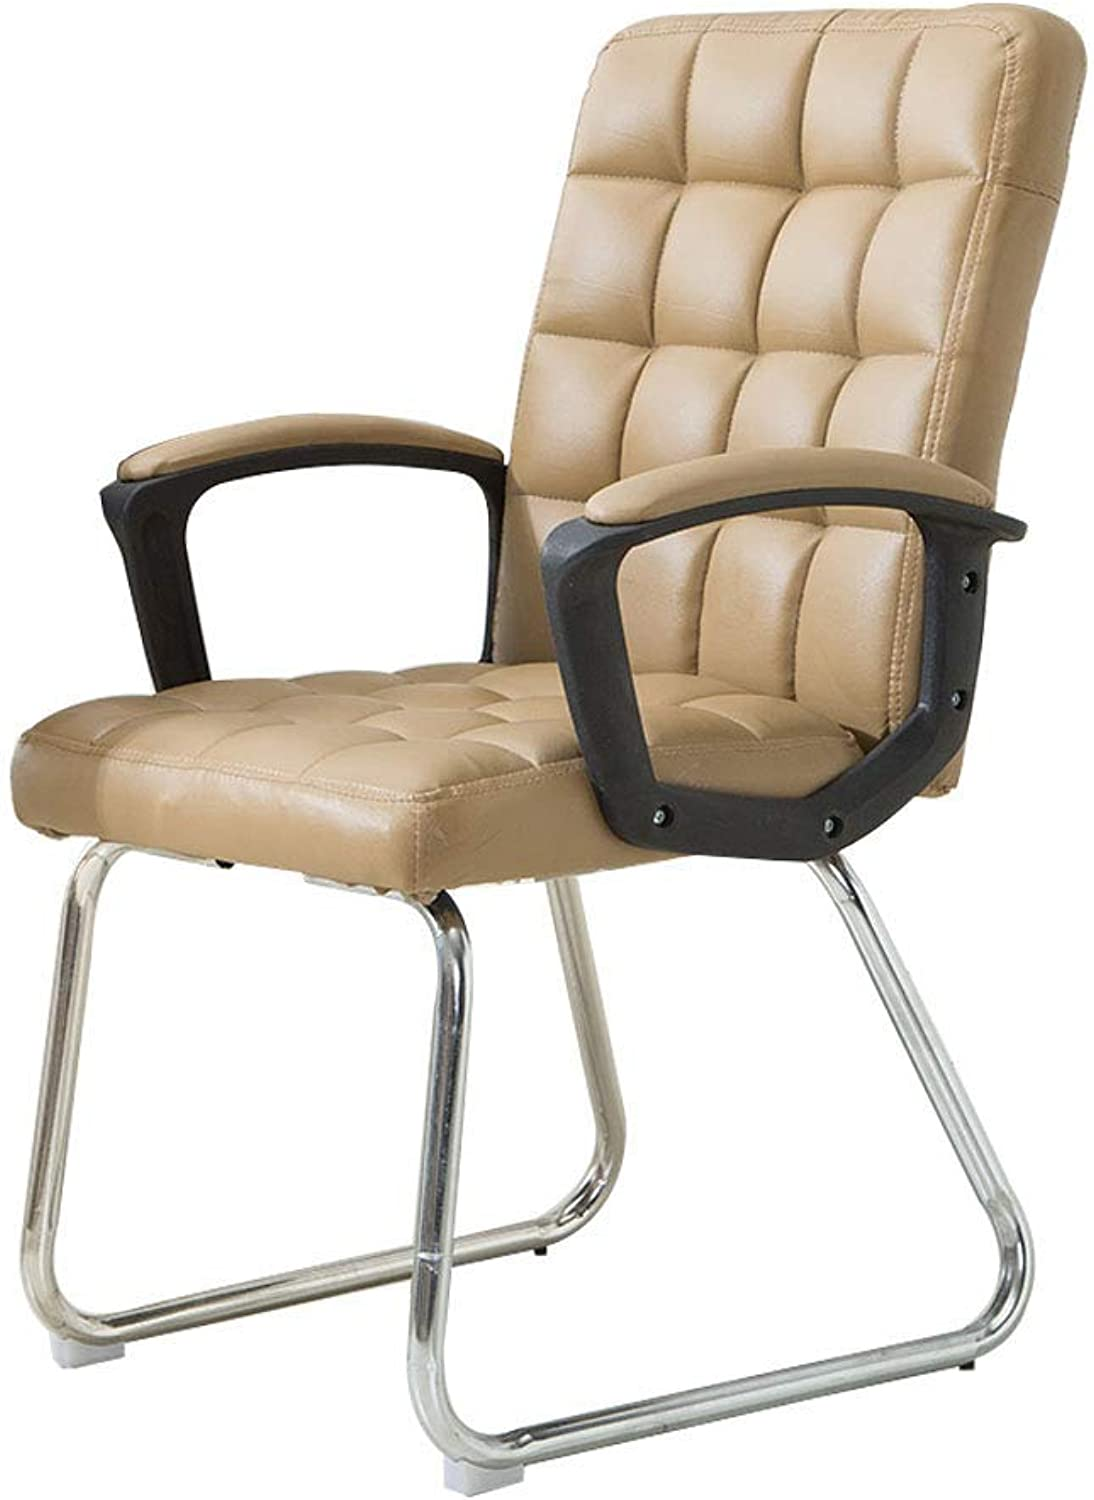 Chair Office Chair, Armchair, Imitation Leather High Resilience Sponge Pad Home Computer Staff Student Seat Meeting to Discuss Backrest Chair,gold